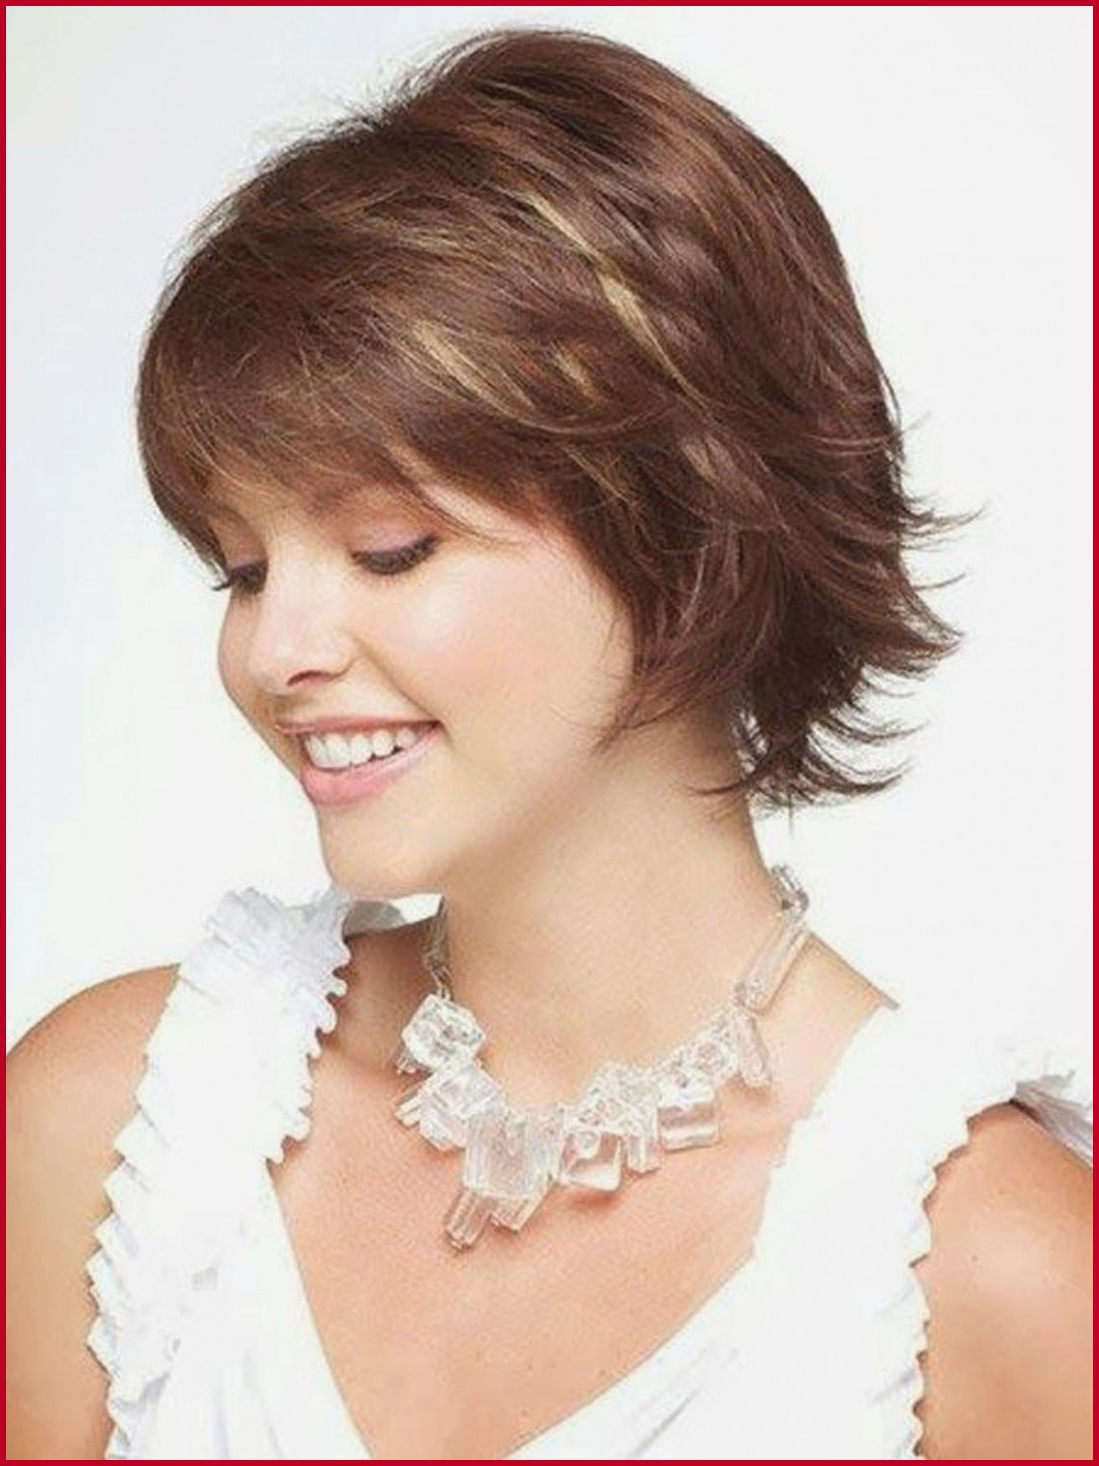 Short Hairstyles For Thick Wavy Hair 145575 Short Hairstyles For Inside Short Hairsyles For Thick Wavy Hair (View 24 of 25)